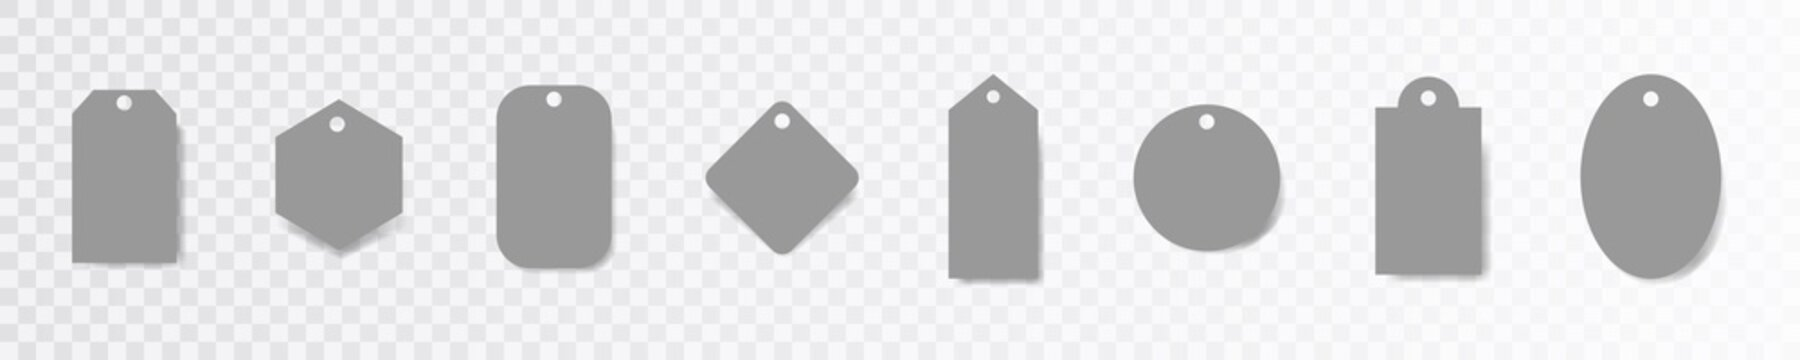 Price tags label collection. Paper sale tag set on transparent background.